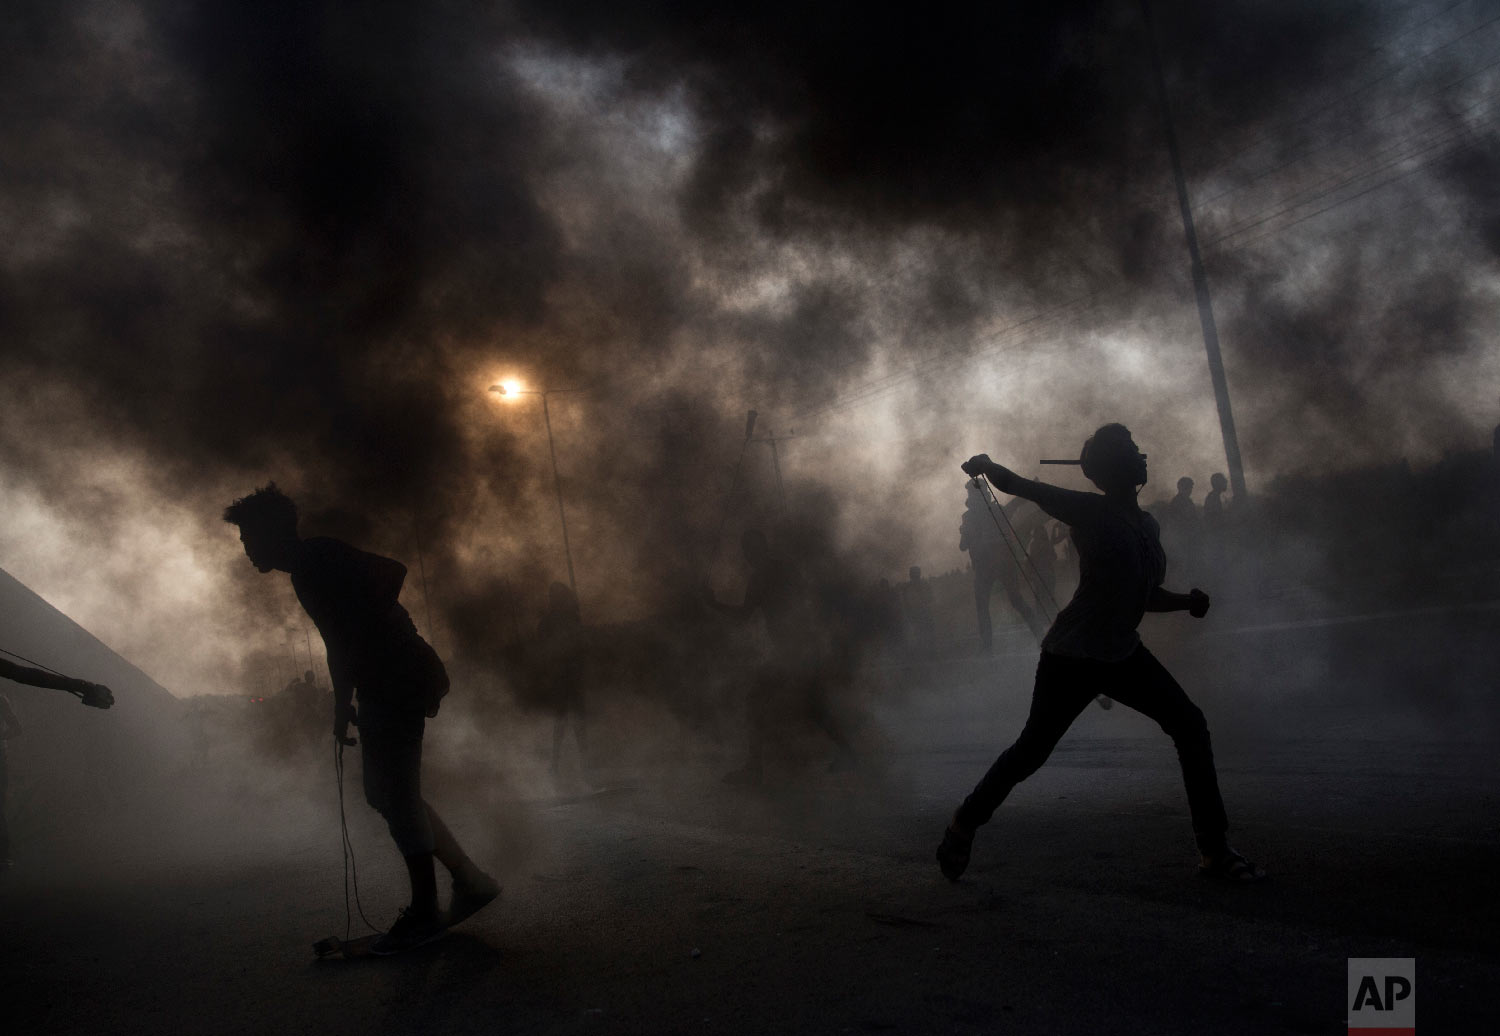 Palestinian protesters hurl stones during a demonstration at the entrance of Erez border crossing between Gaza and Israel, in the northern Gaza Strip, Oct. 3, 2018. (AP Photo/Khalil Hamra)